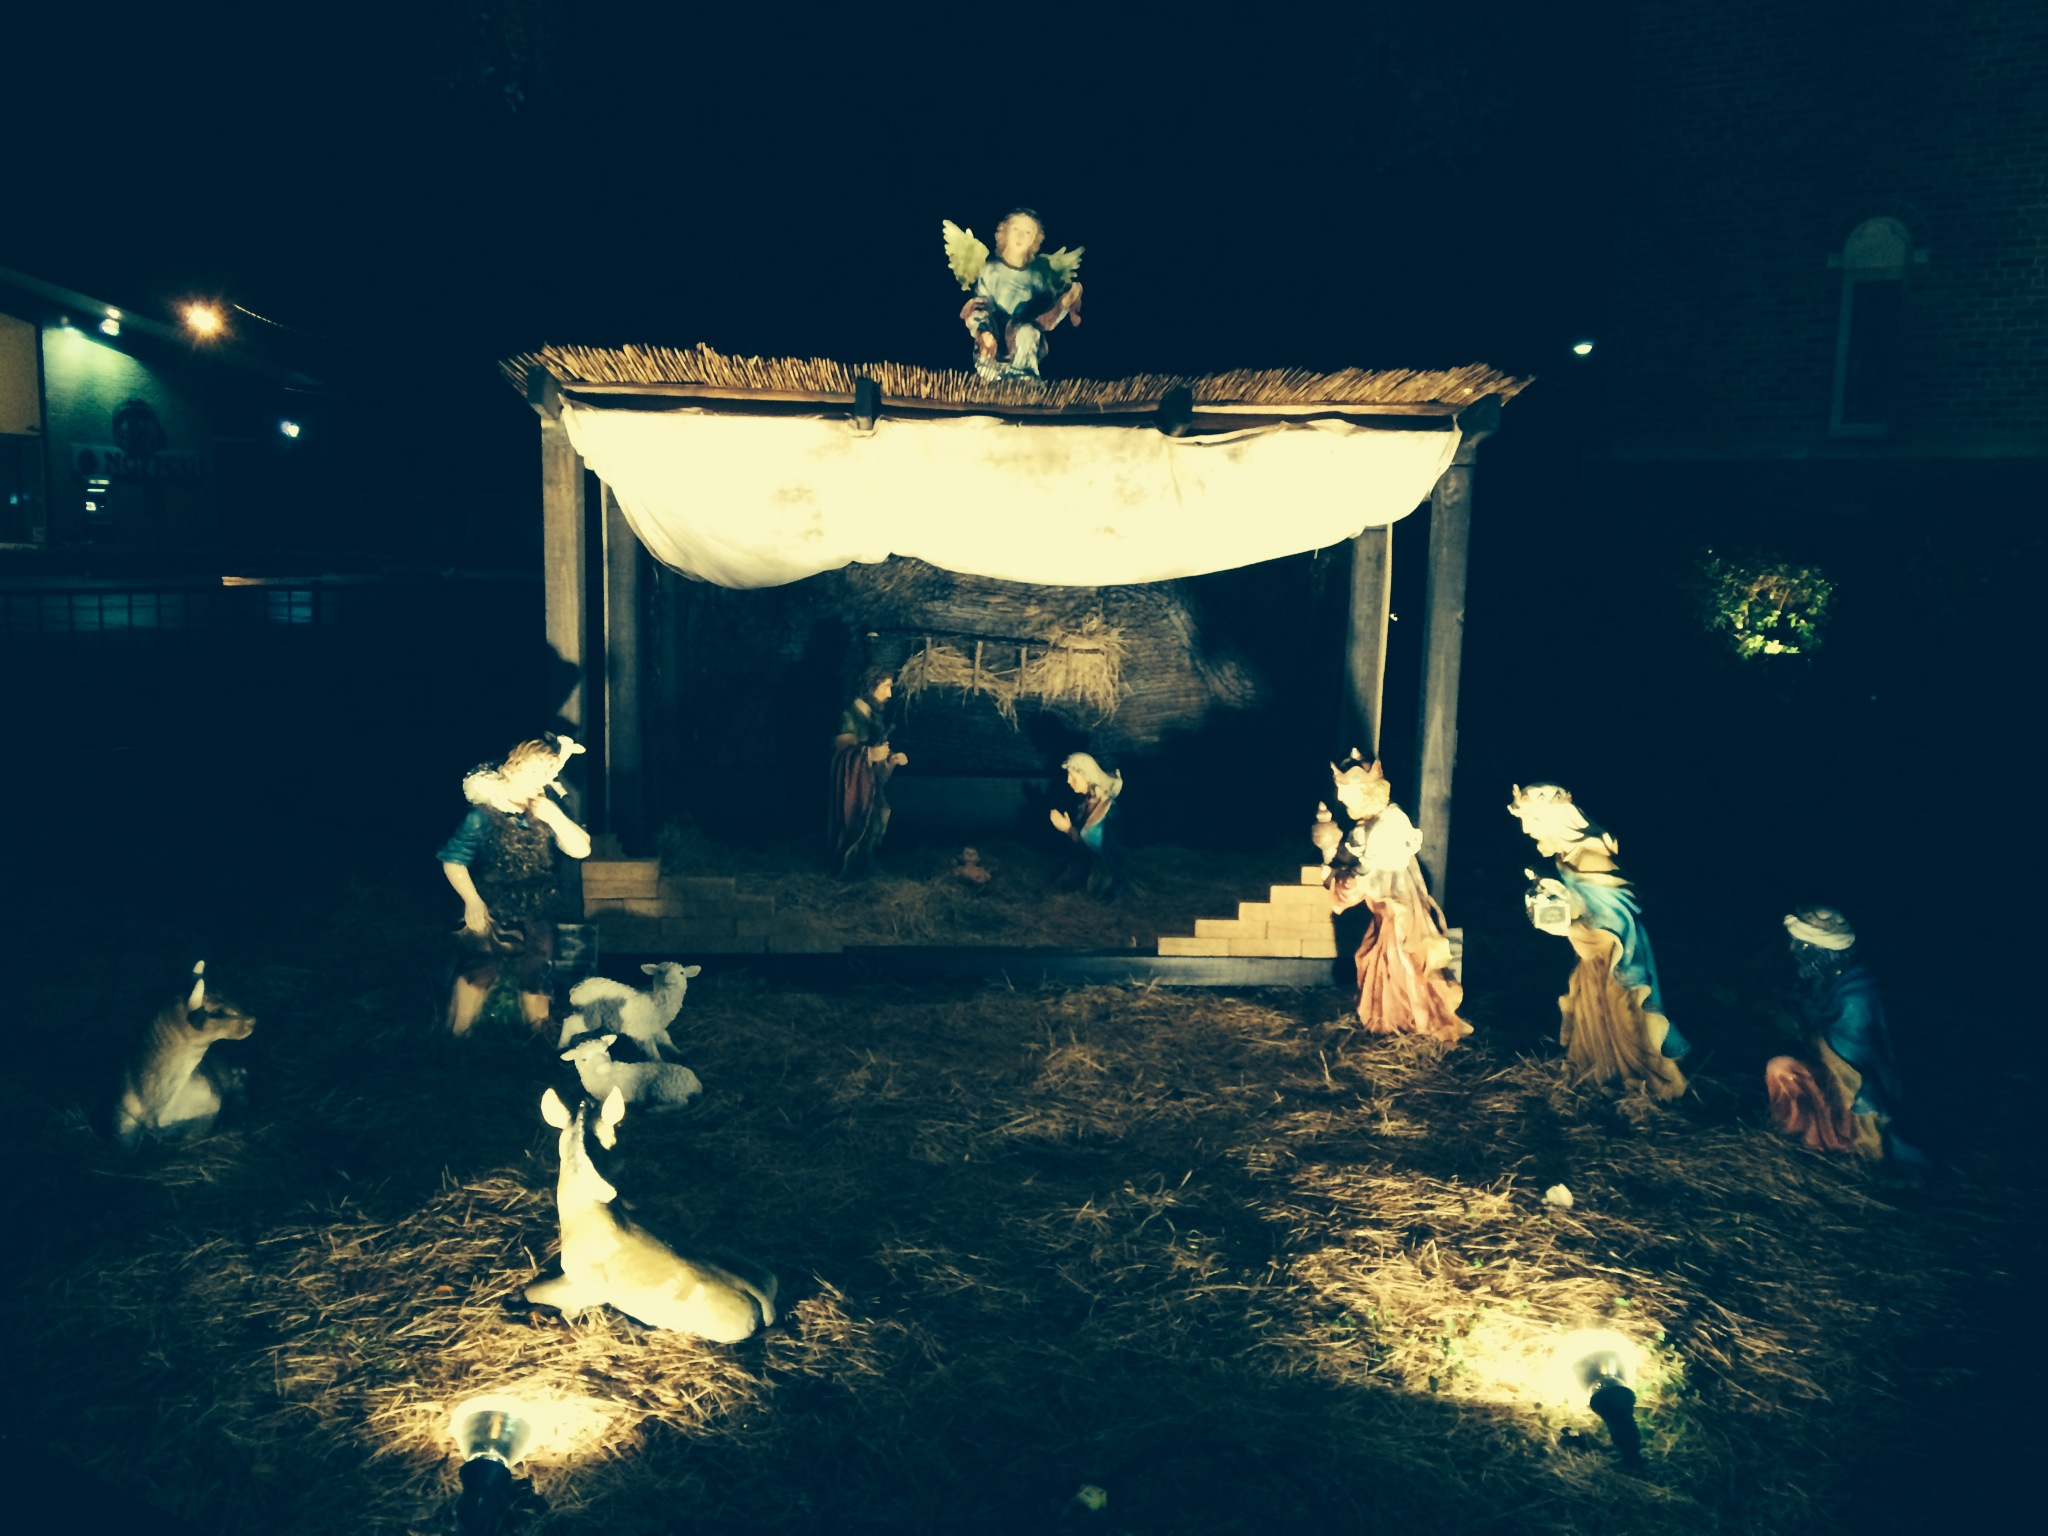 Our Lady of the Lake Nativity Scene